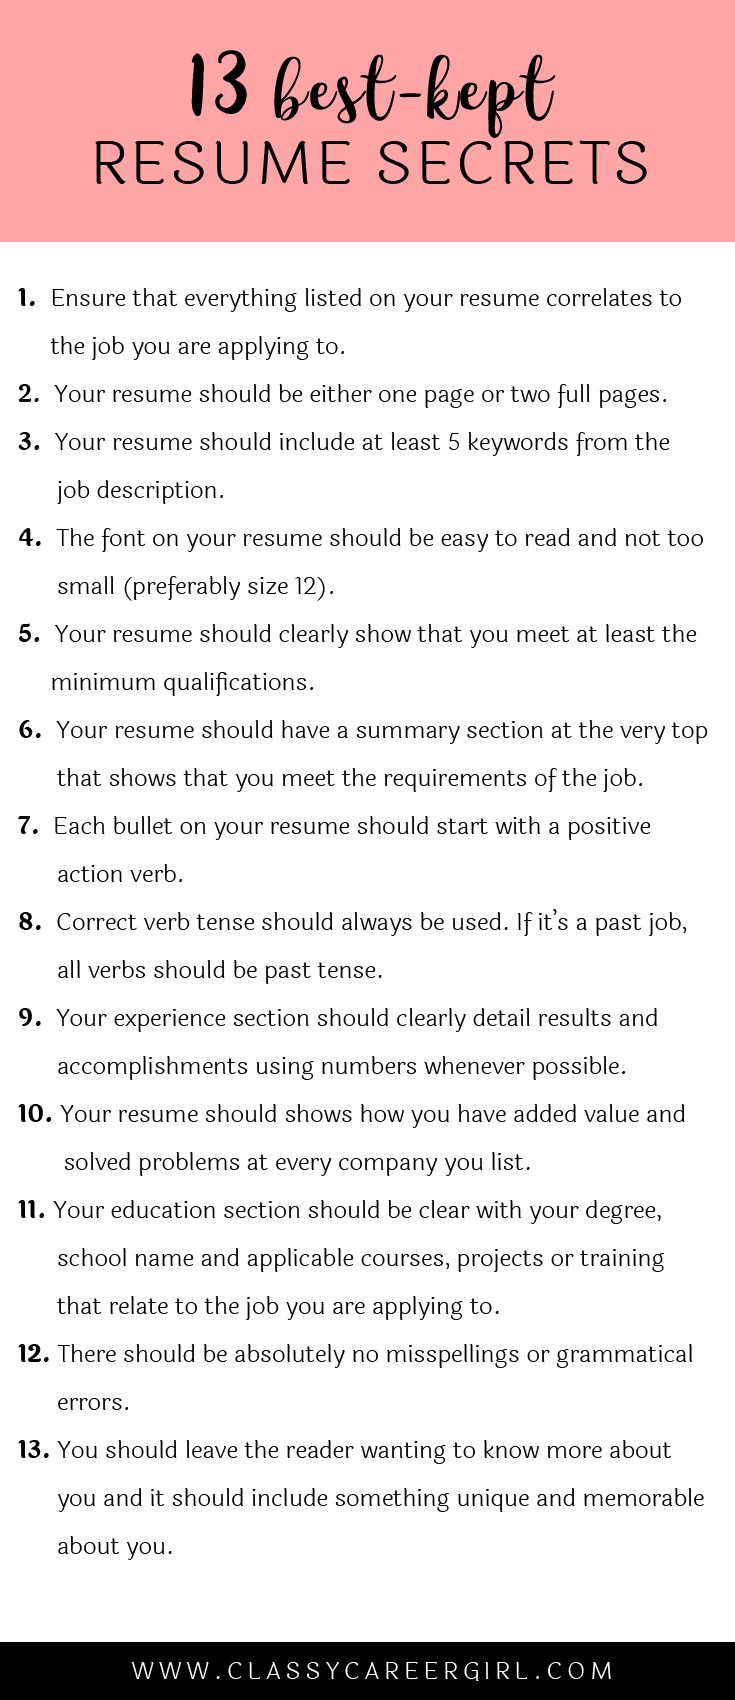 Opposenewapstandardsus  Nice  Ideas About Resume On Pinterest  Cv Format Resume Cv And  With Marvelous Some Hiring Managers Will Toss Your Resume Out If You Dont Know These  With Beauteous High School Resume Maker Also Resume For Construction Project Manager In Addition Team Player On Resume And Production Assistant Resume Sample As Well As Chronological Resume Vs Functional Resume Additionally Interpreter Resume Sample From Pinterestcom With Opposenewapstandardsus  Marvelous  Ideas About Resume On Pinterest  Cv Format Resume Cv And  With Beauteous Some Hiring Managers Will Toss Your Resume Out If You Dont Know These  And Nice High School Resume Maker Also Resume For Construction Project Manager In Addition Team Player On Resume From Pinterestcom